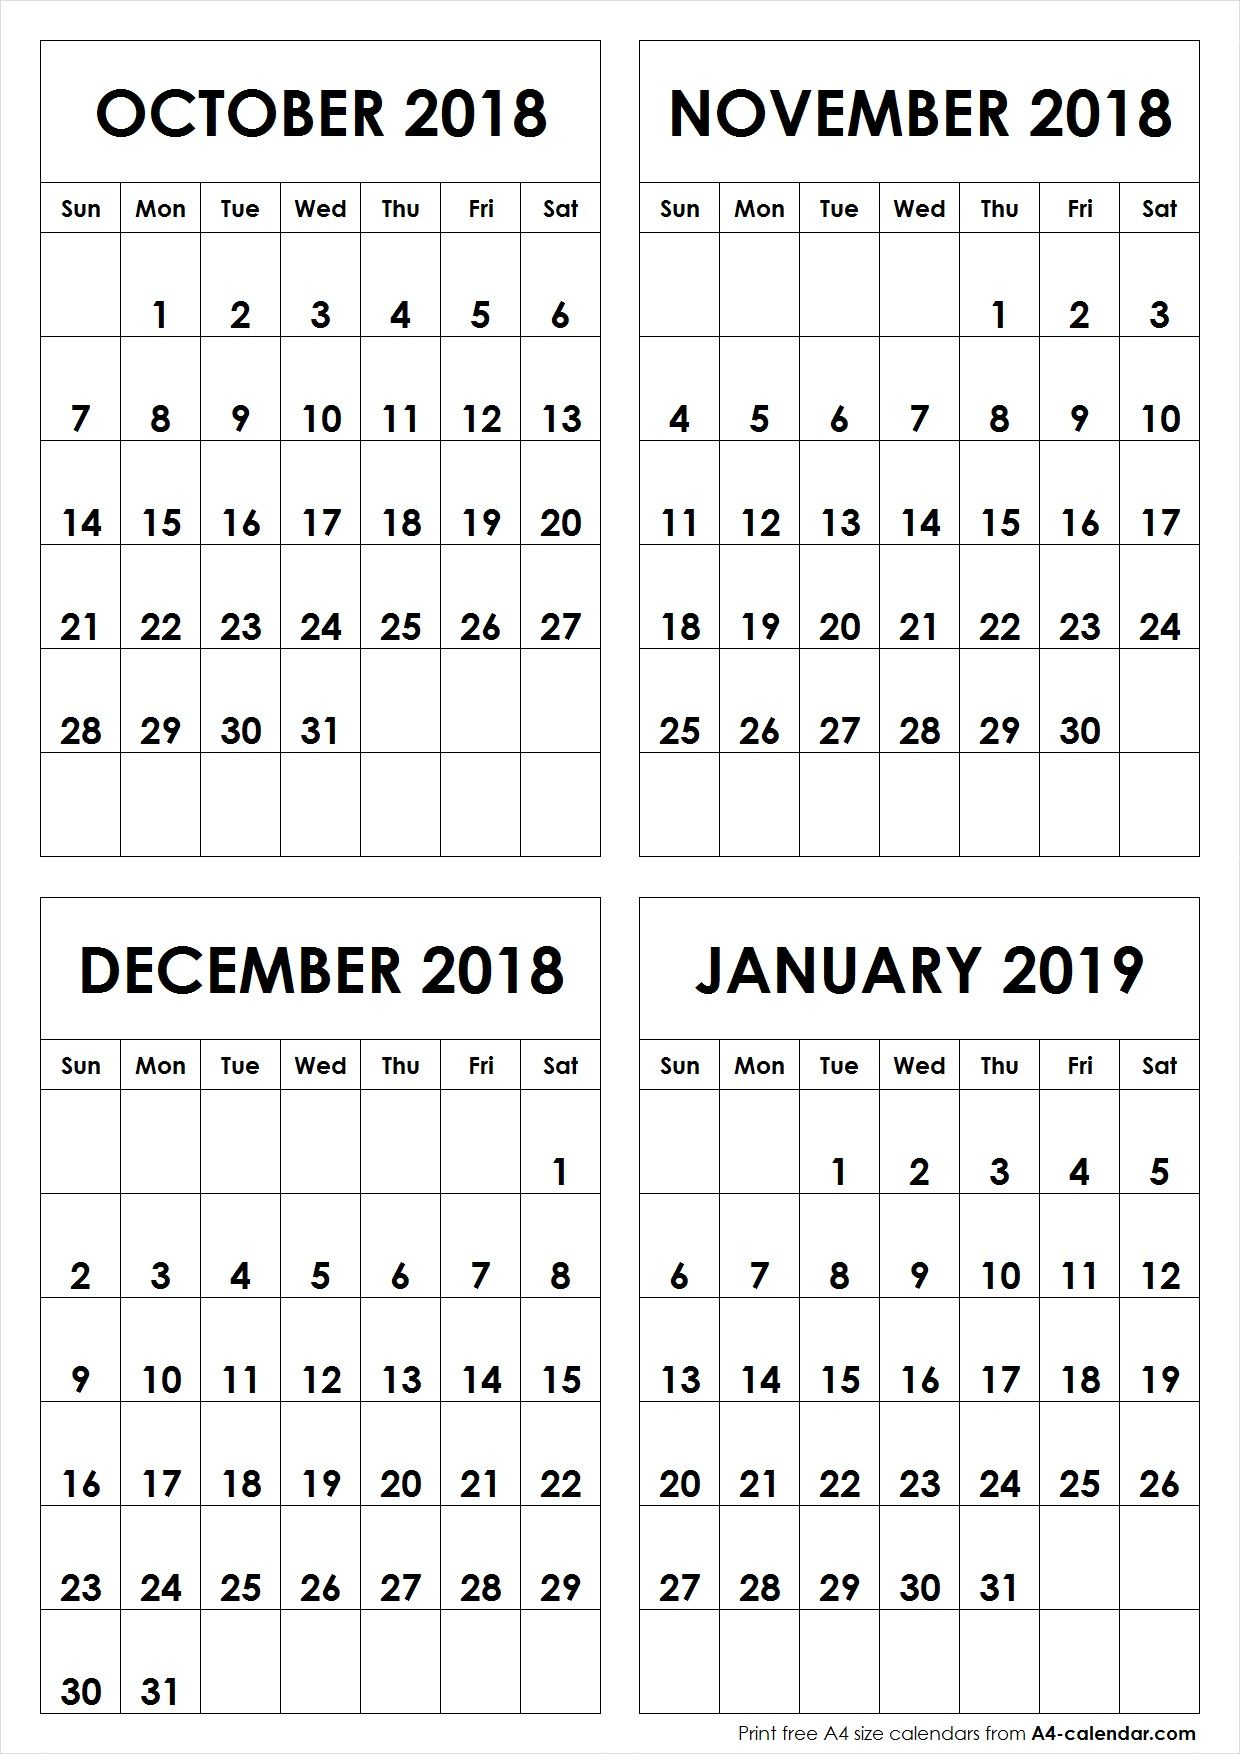 Calendar For September - December 2019 A4 October November December 2018 January 2019 A4 Calendar | October